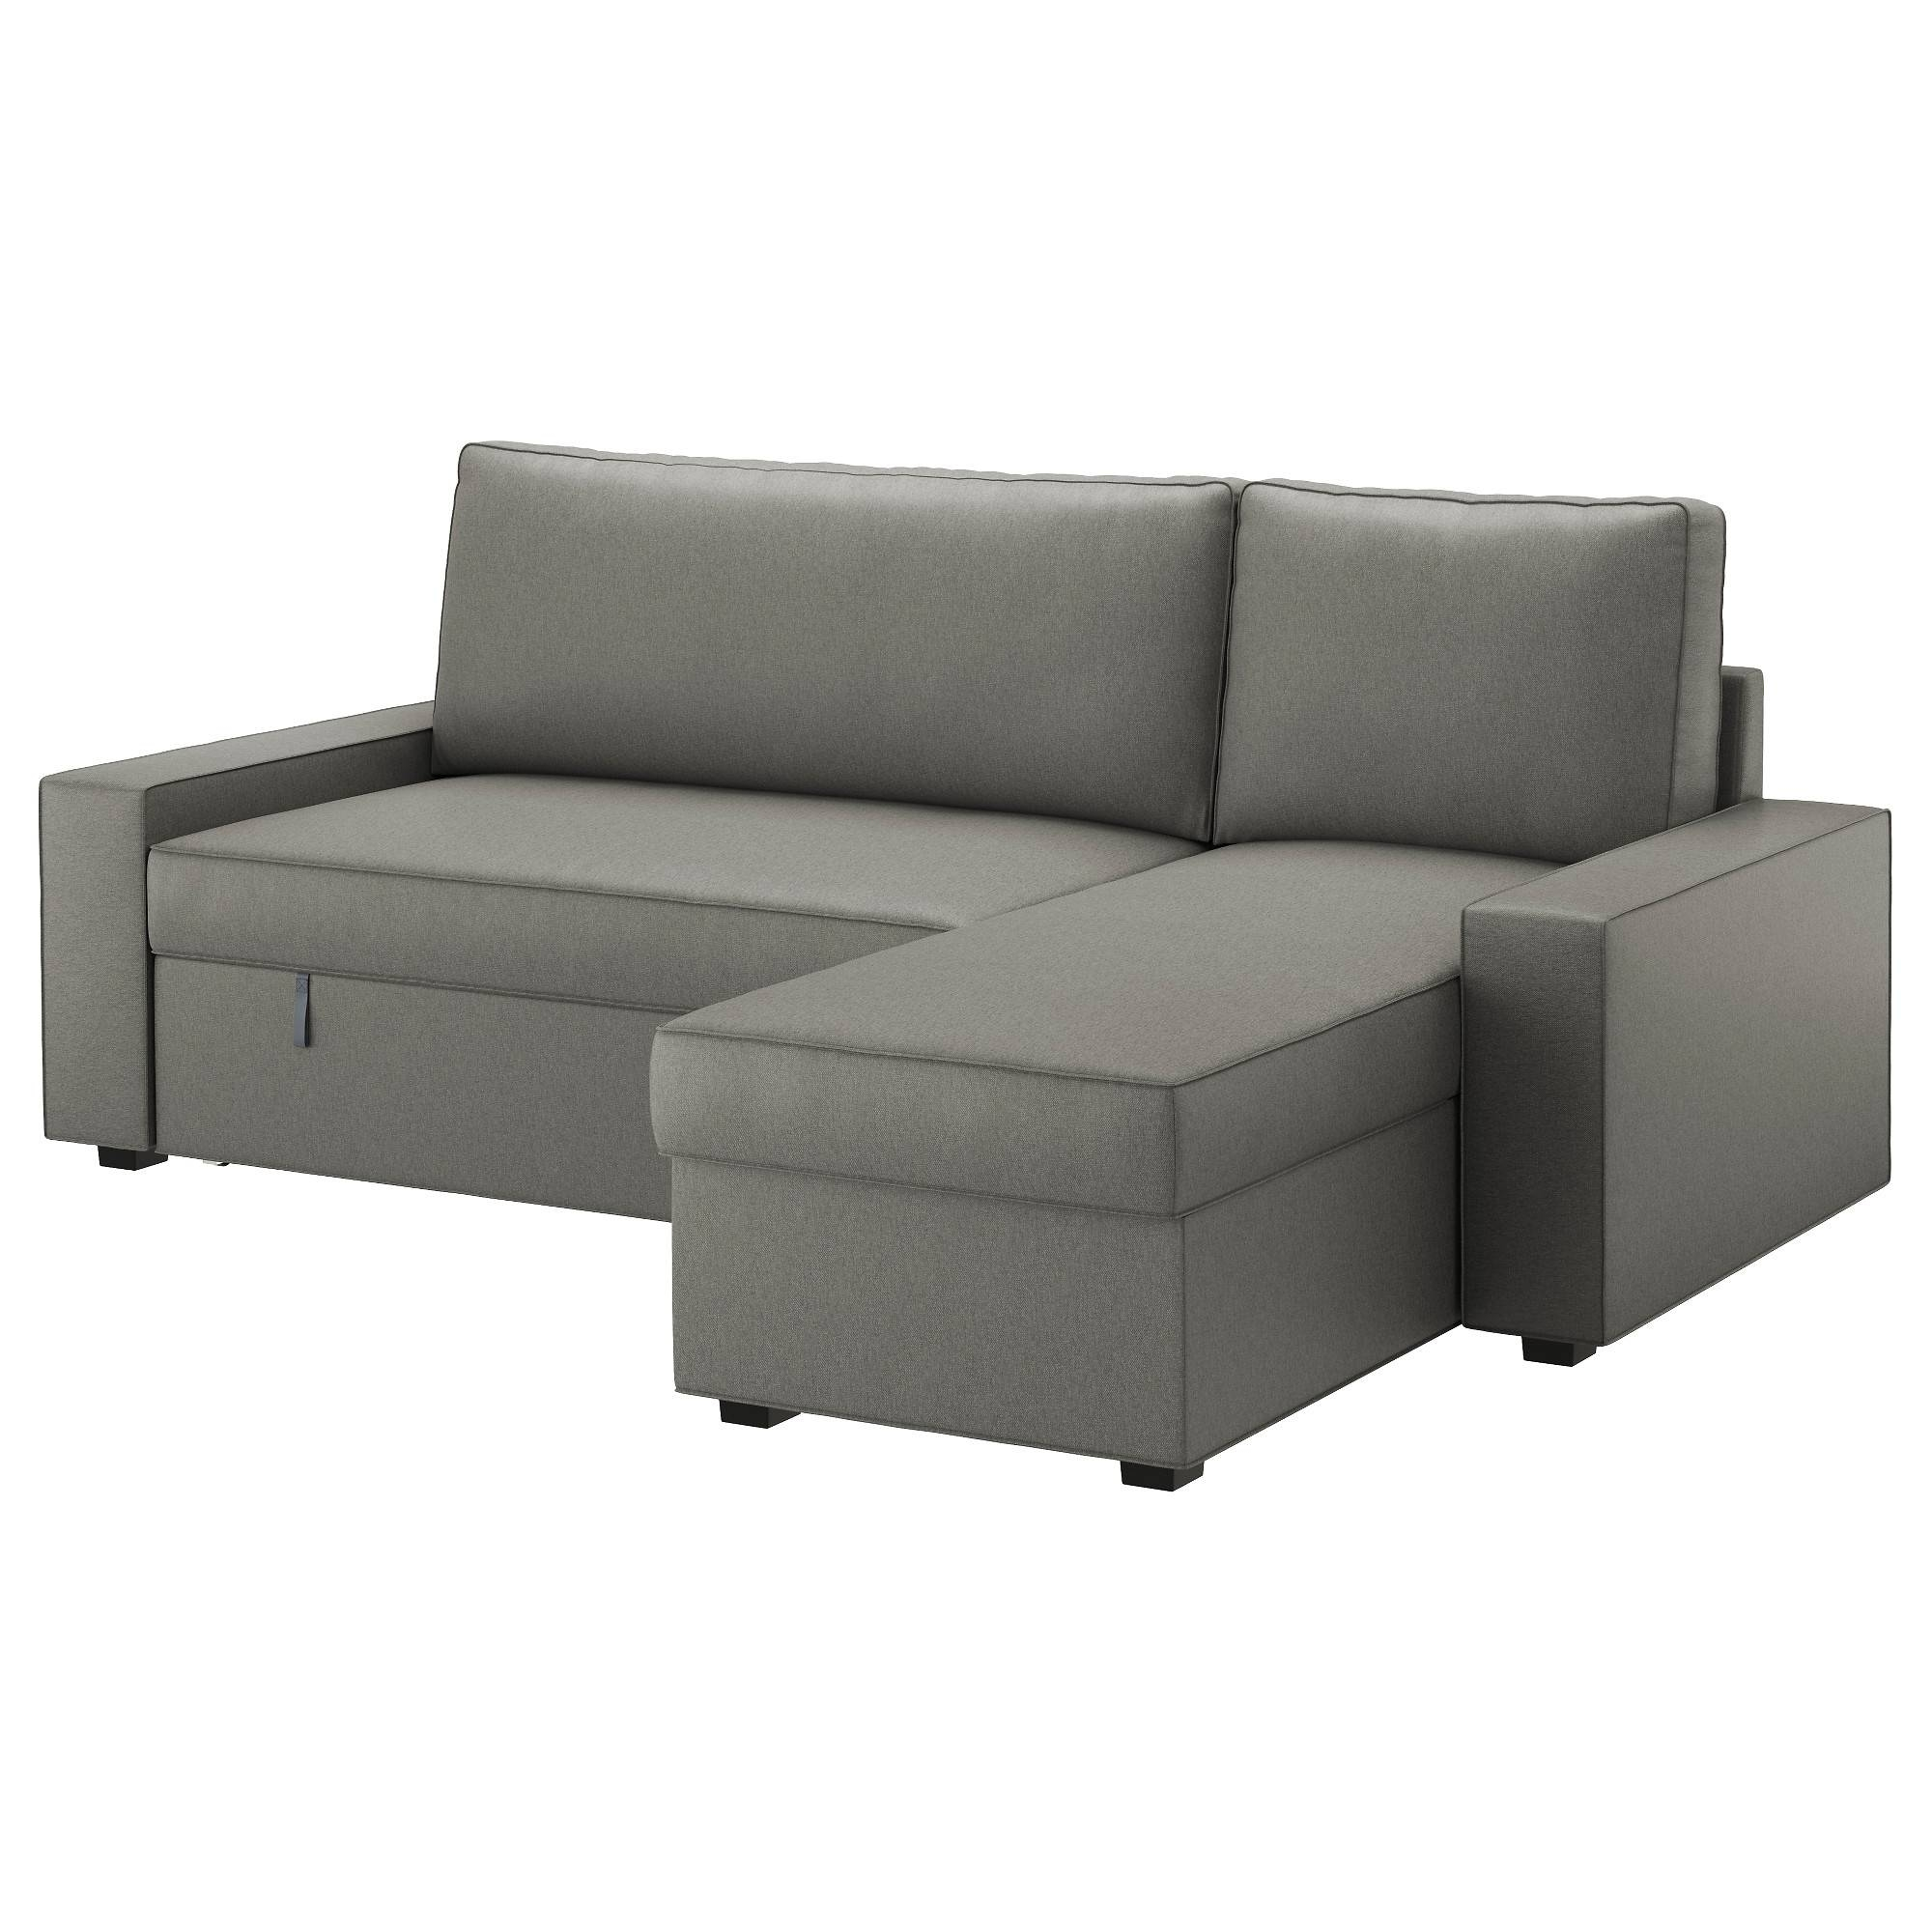 Sofa With Chaise Lounge The Best Ikea Chaise Lounge Sofa